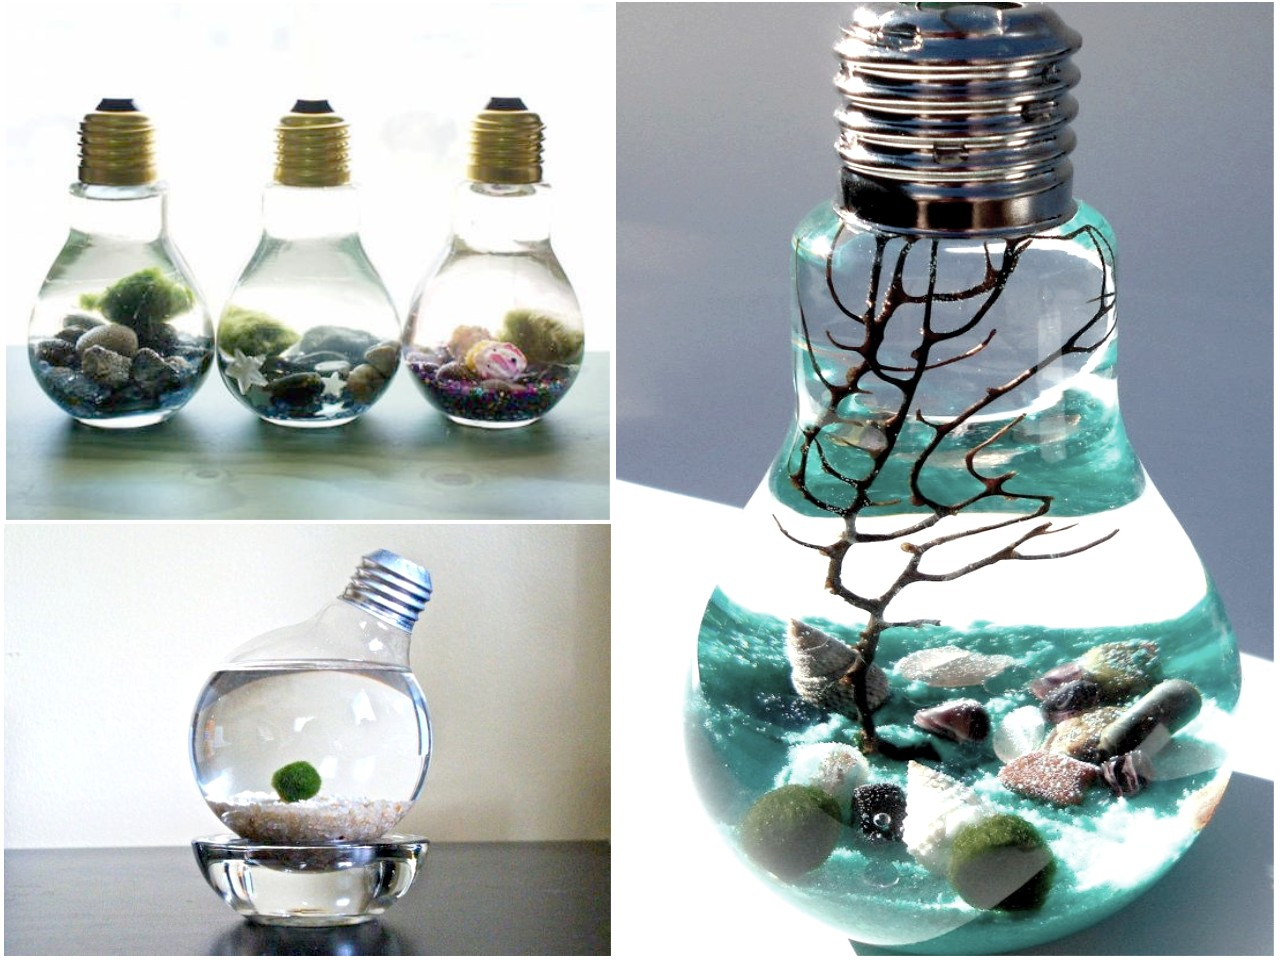 10 ideas de decoraci n con bombillas recicladas for Decoracion y ideas